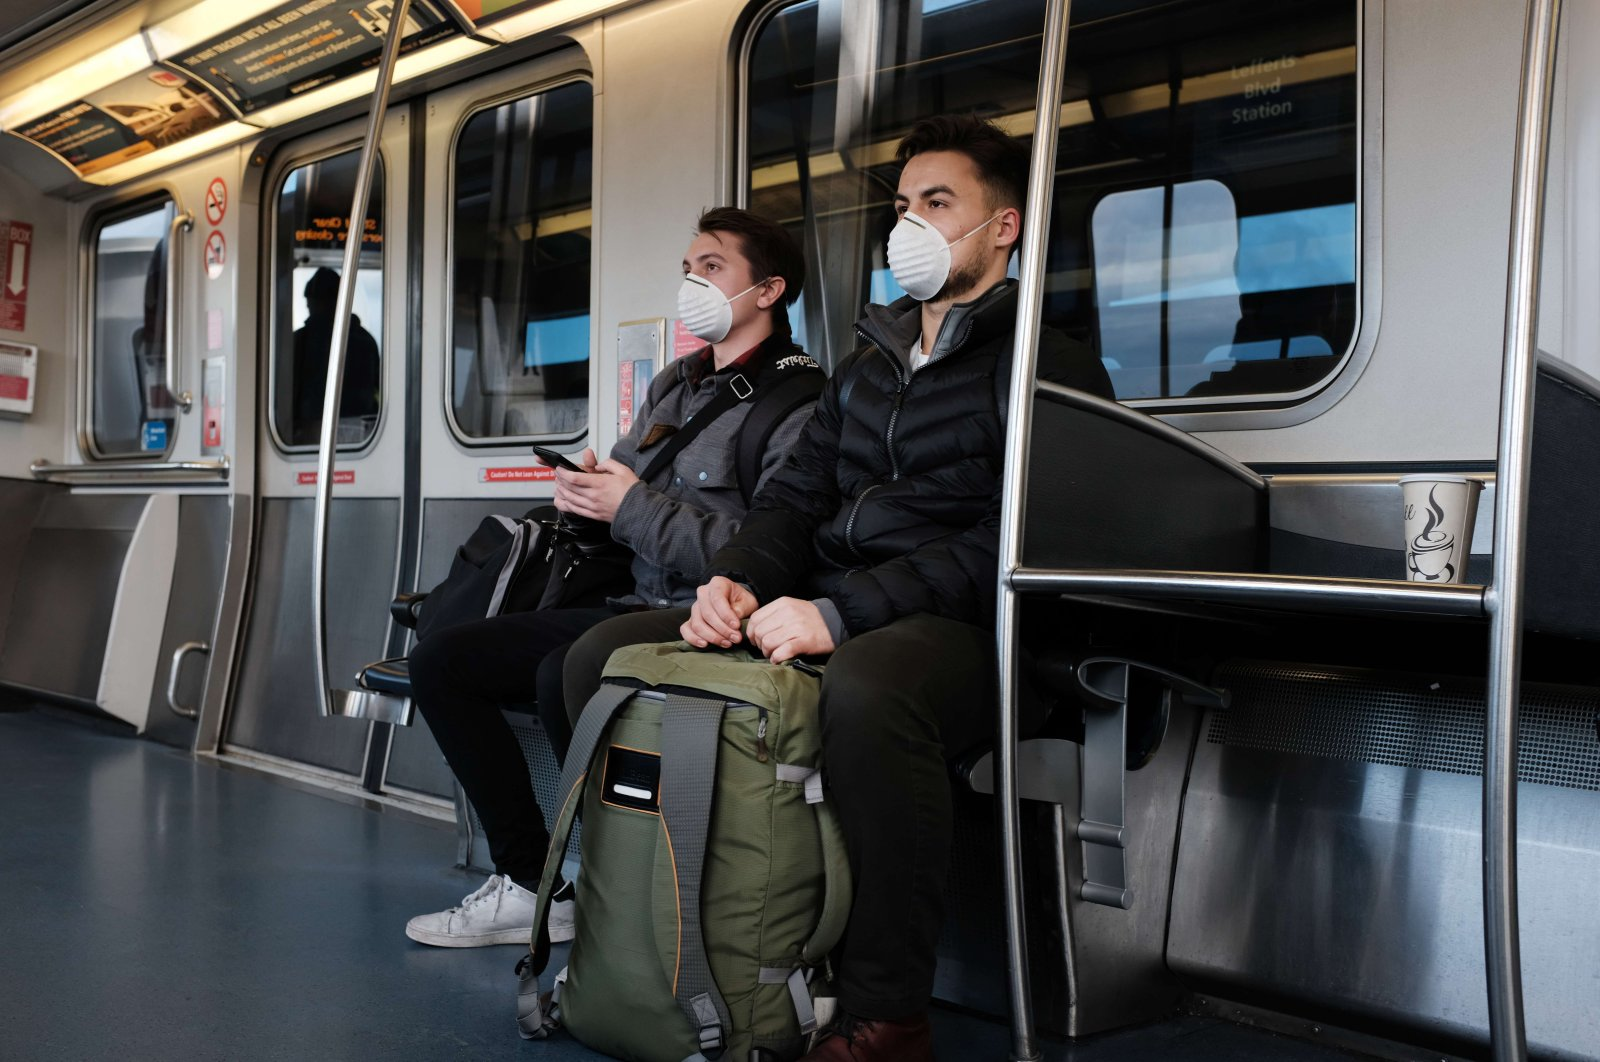 People wear medical masks on the AirTrain as concern over the coronavirus grows enroute to John F. Kennedy Airport (JFK) on March 7, 2020 in New York City. (AFP Photo)